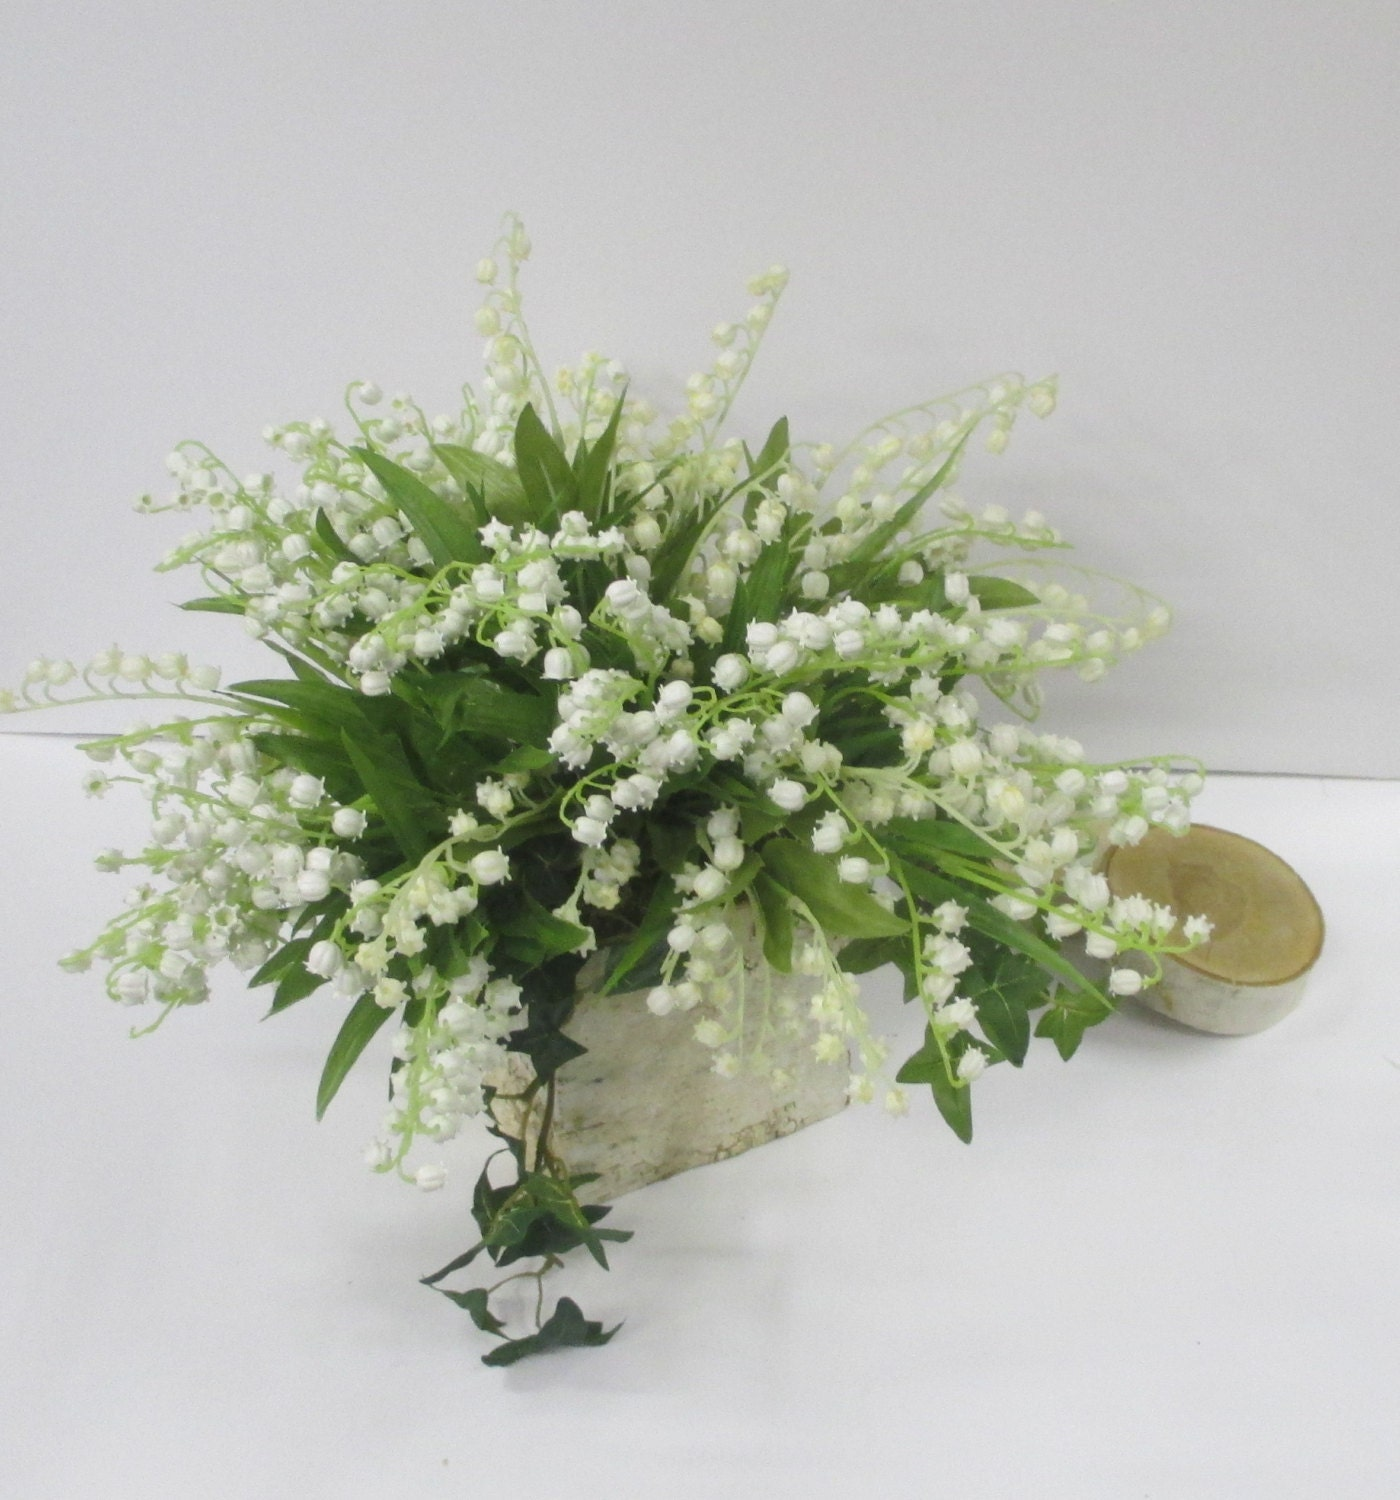 Lily Vase Wedding Flowers : Birch vase centerpiece lily of the valley wedding flower pot